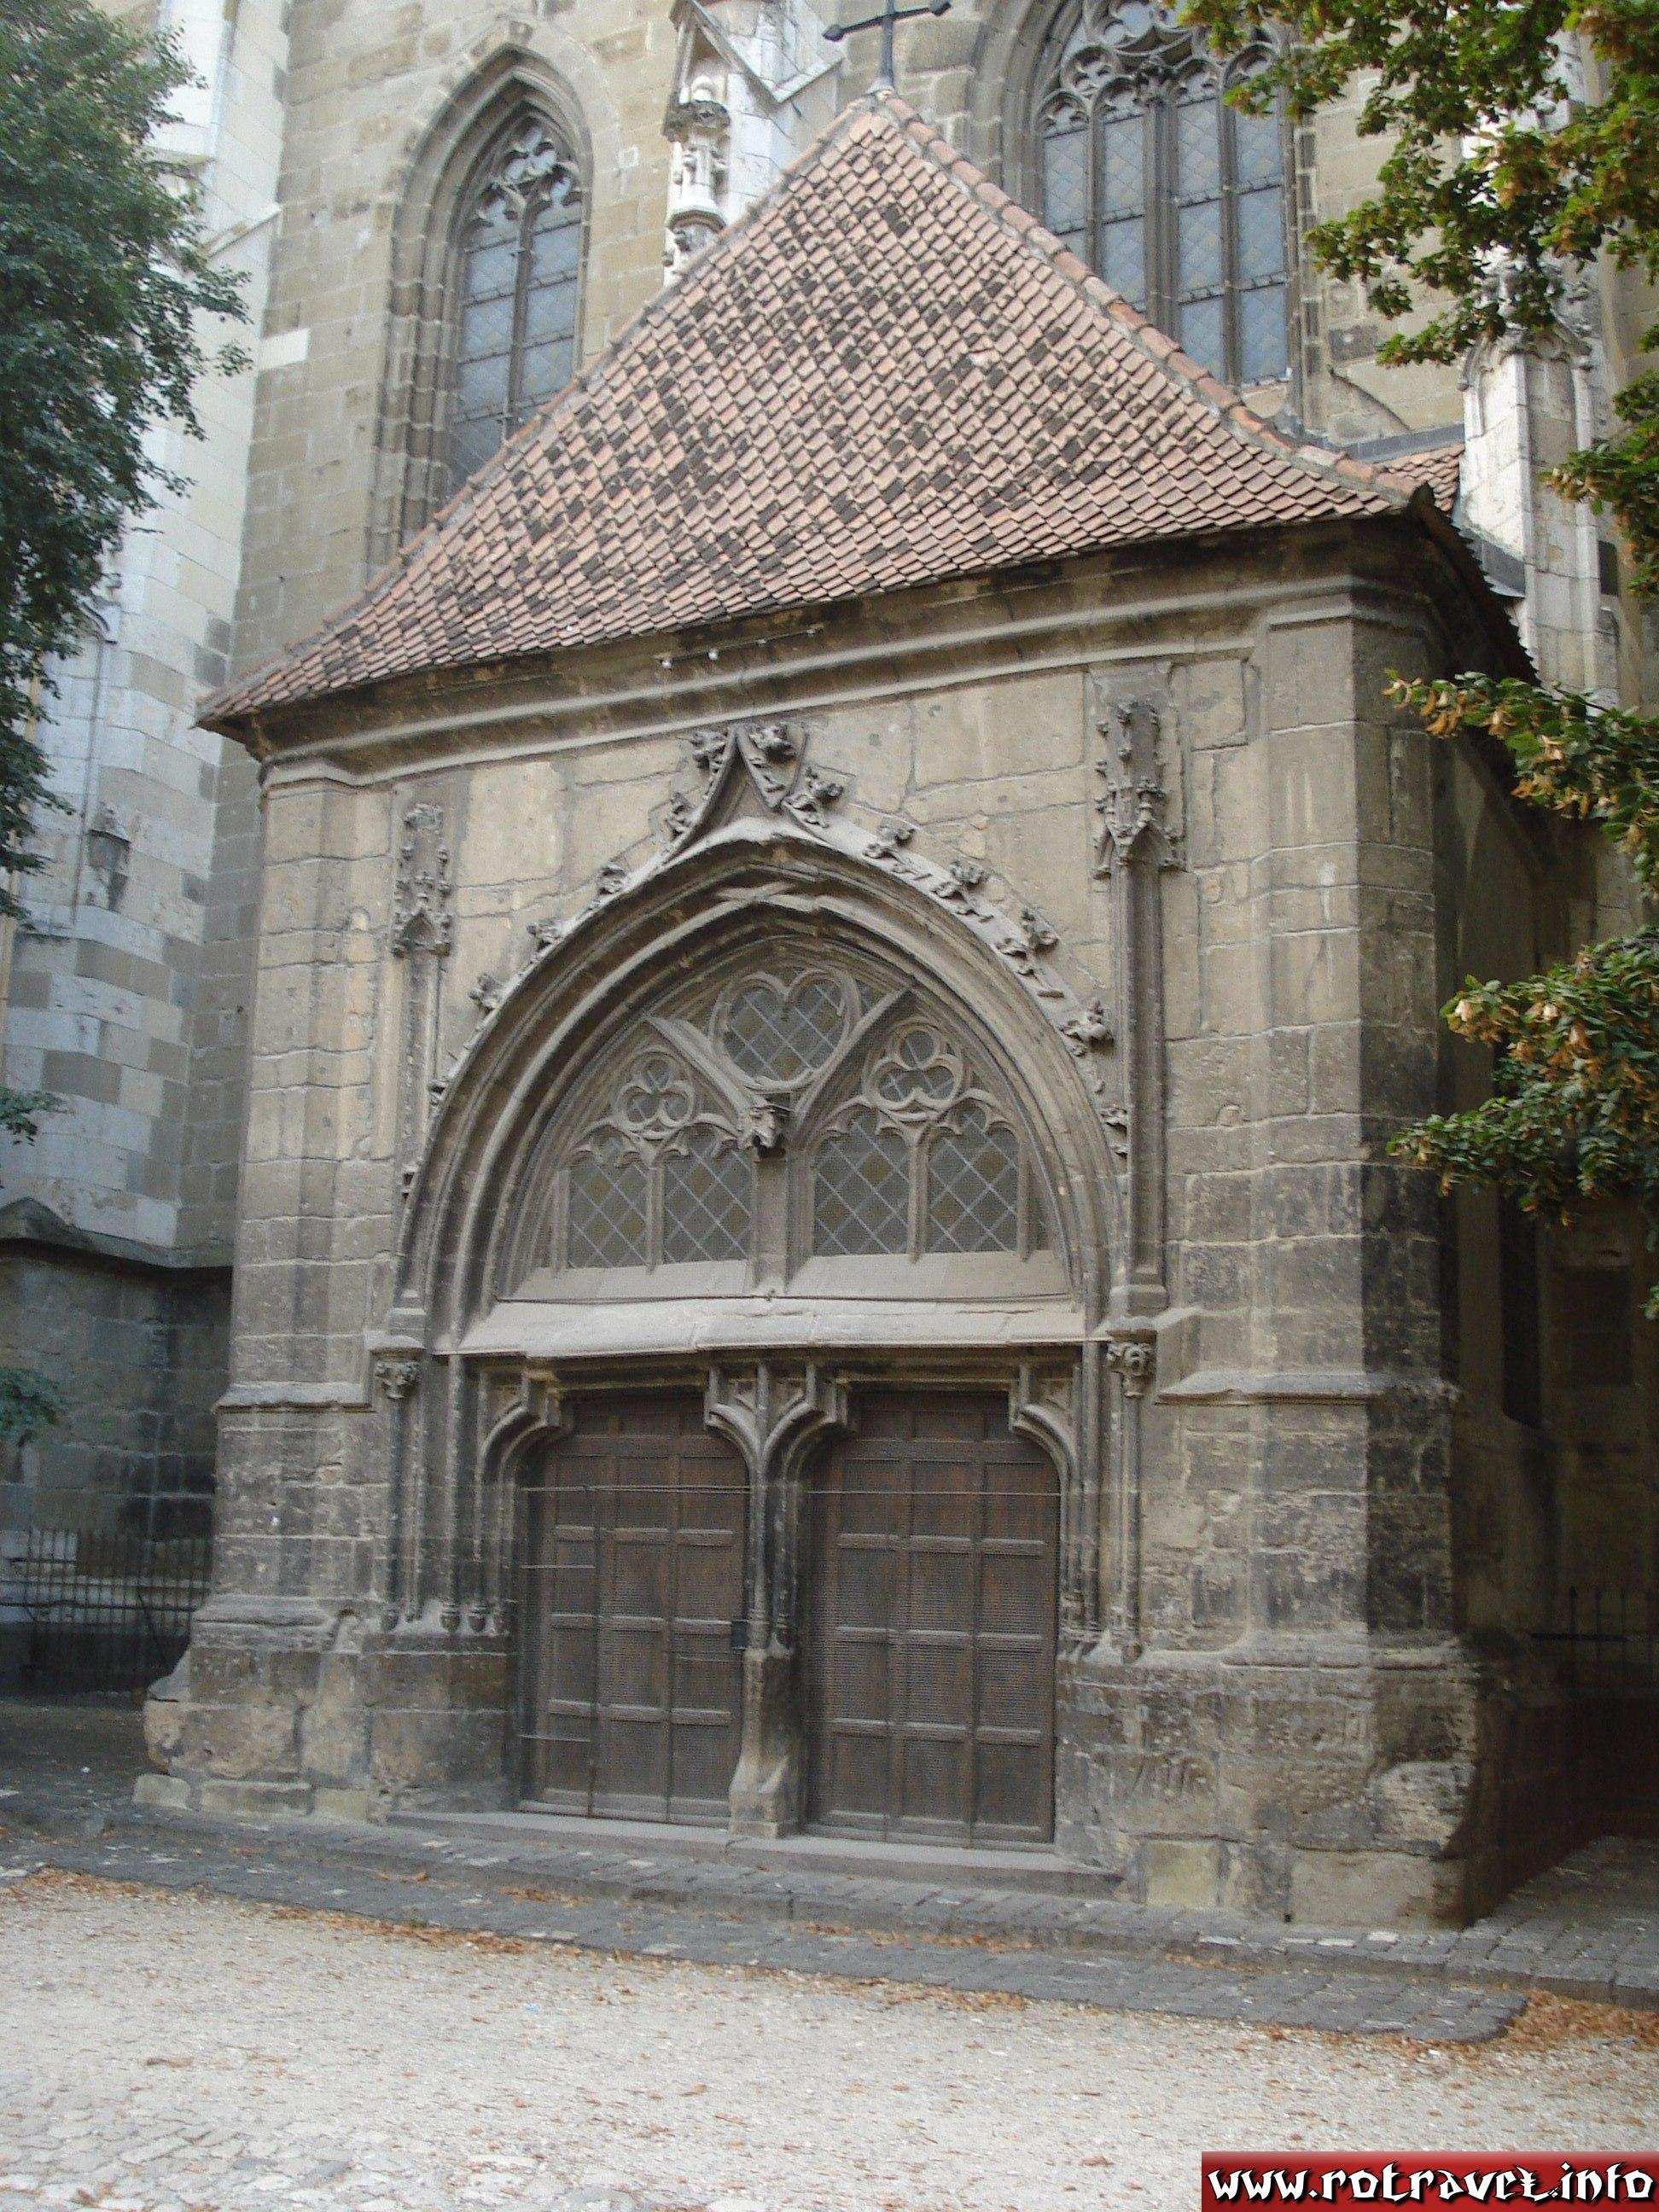 One of the lateral entrance to the church